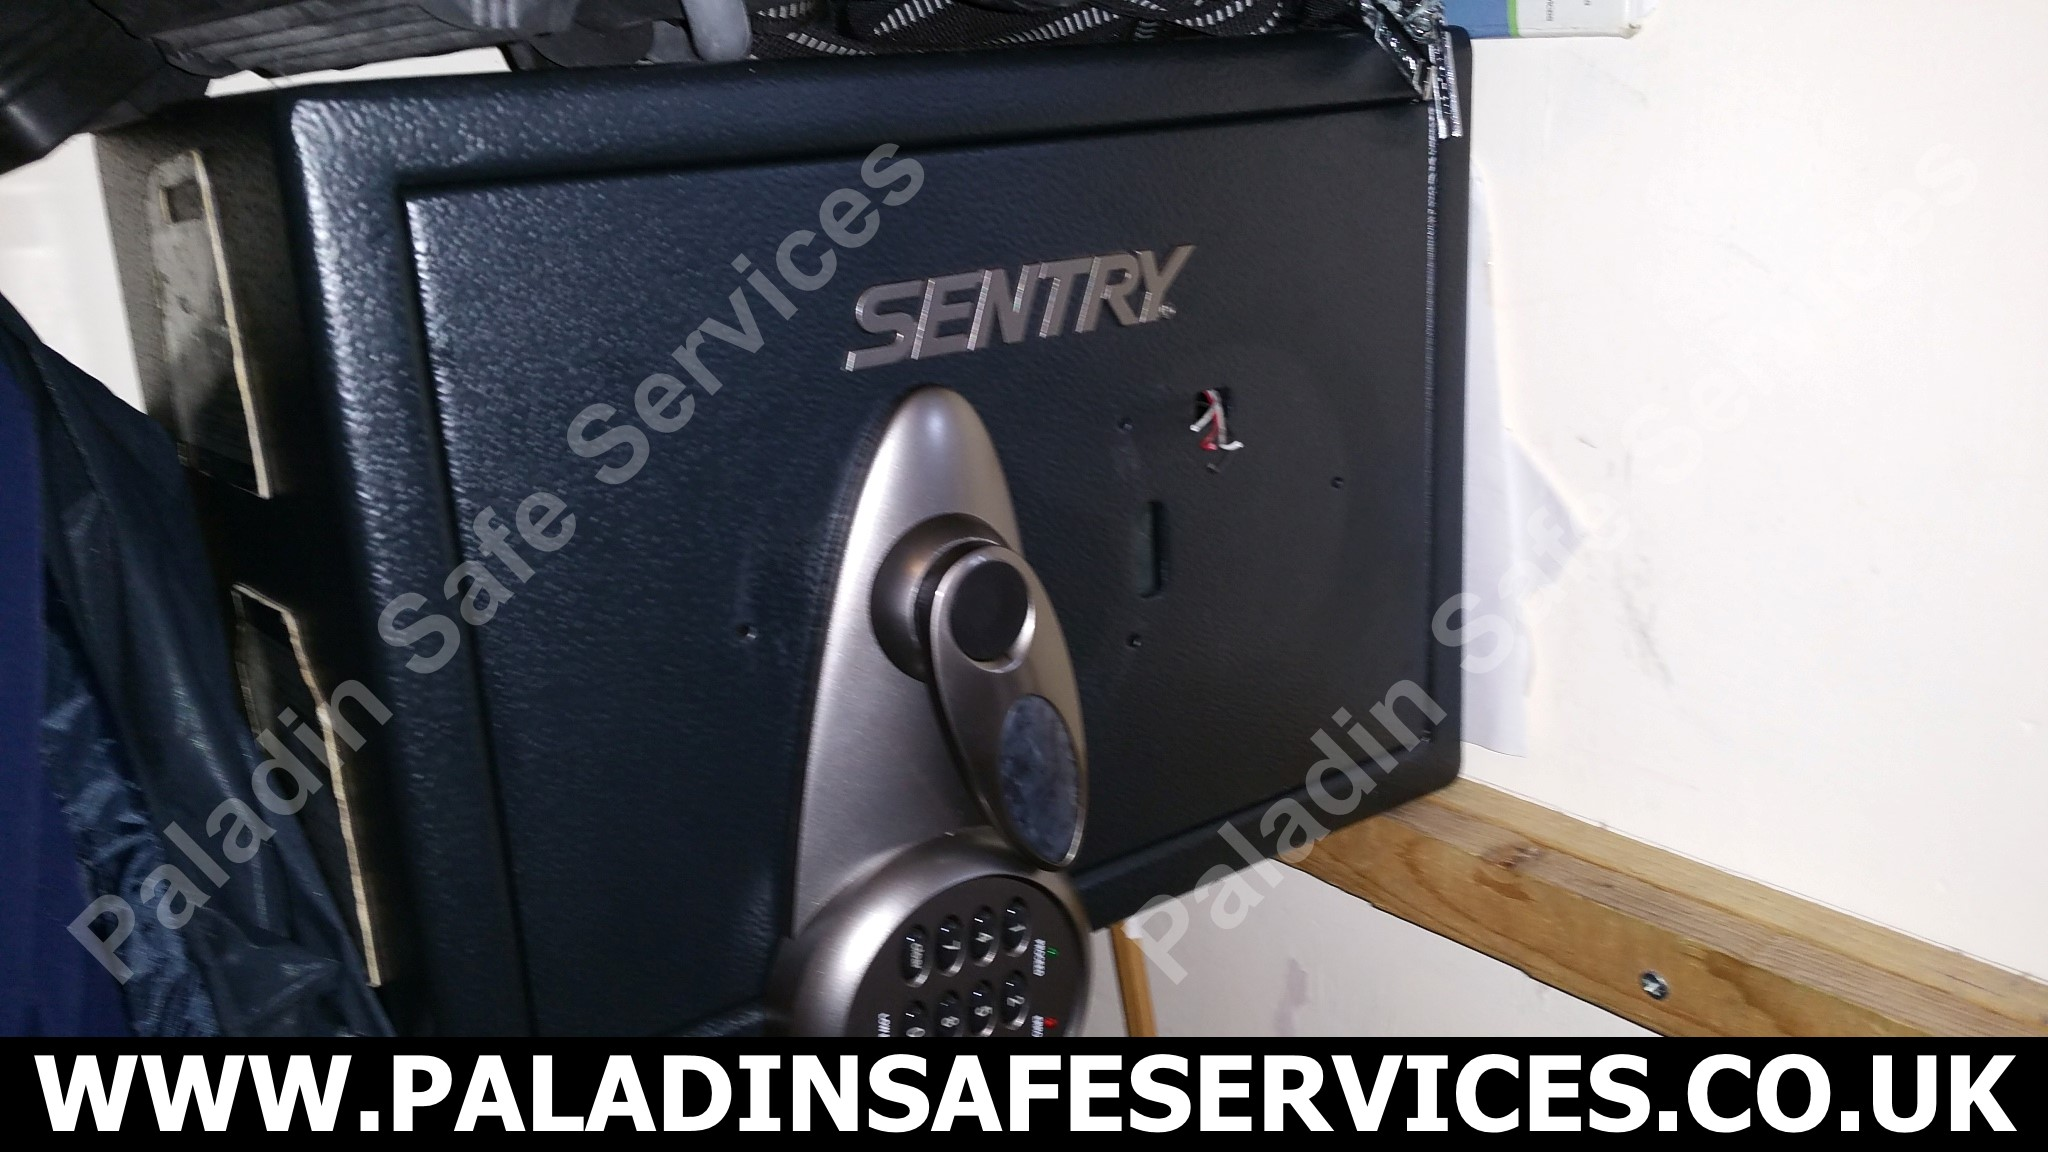 sentry Archives - Paladin Safe Services